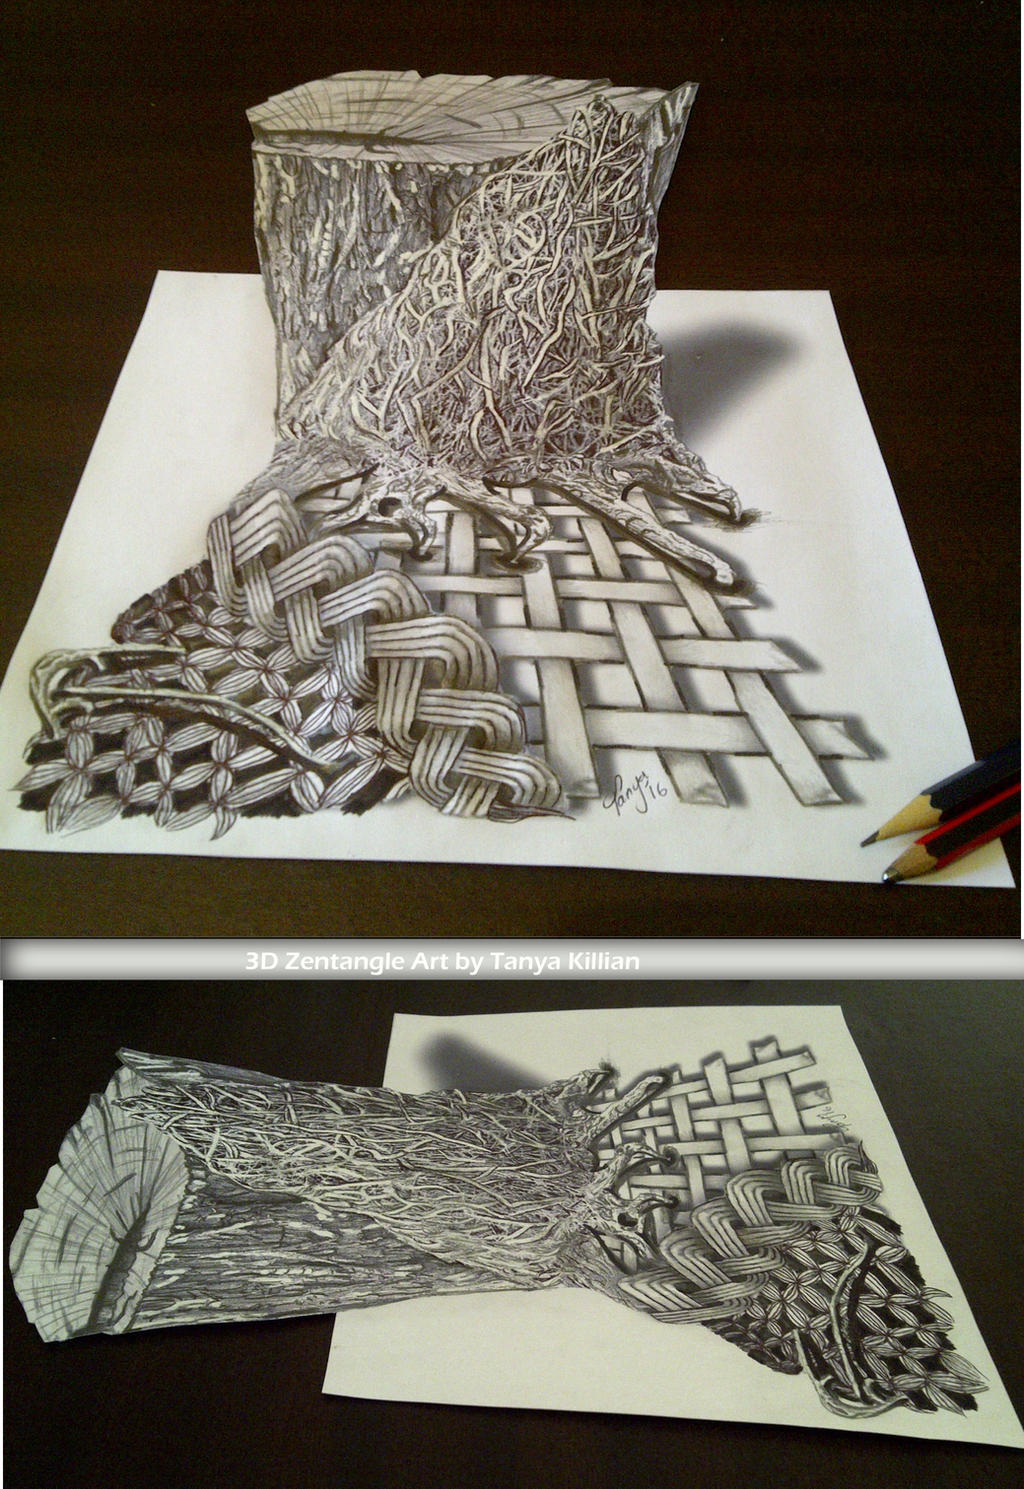 3D Zentangle Tree stump by Tanyakillian on DeviantArt